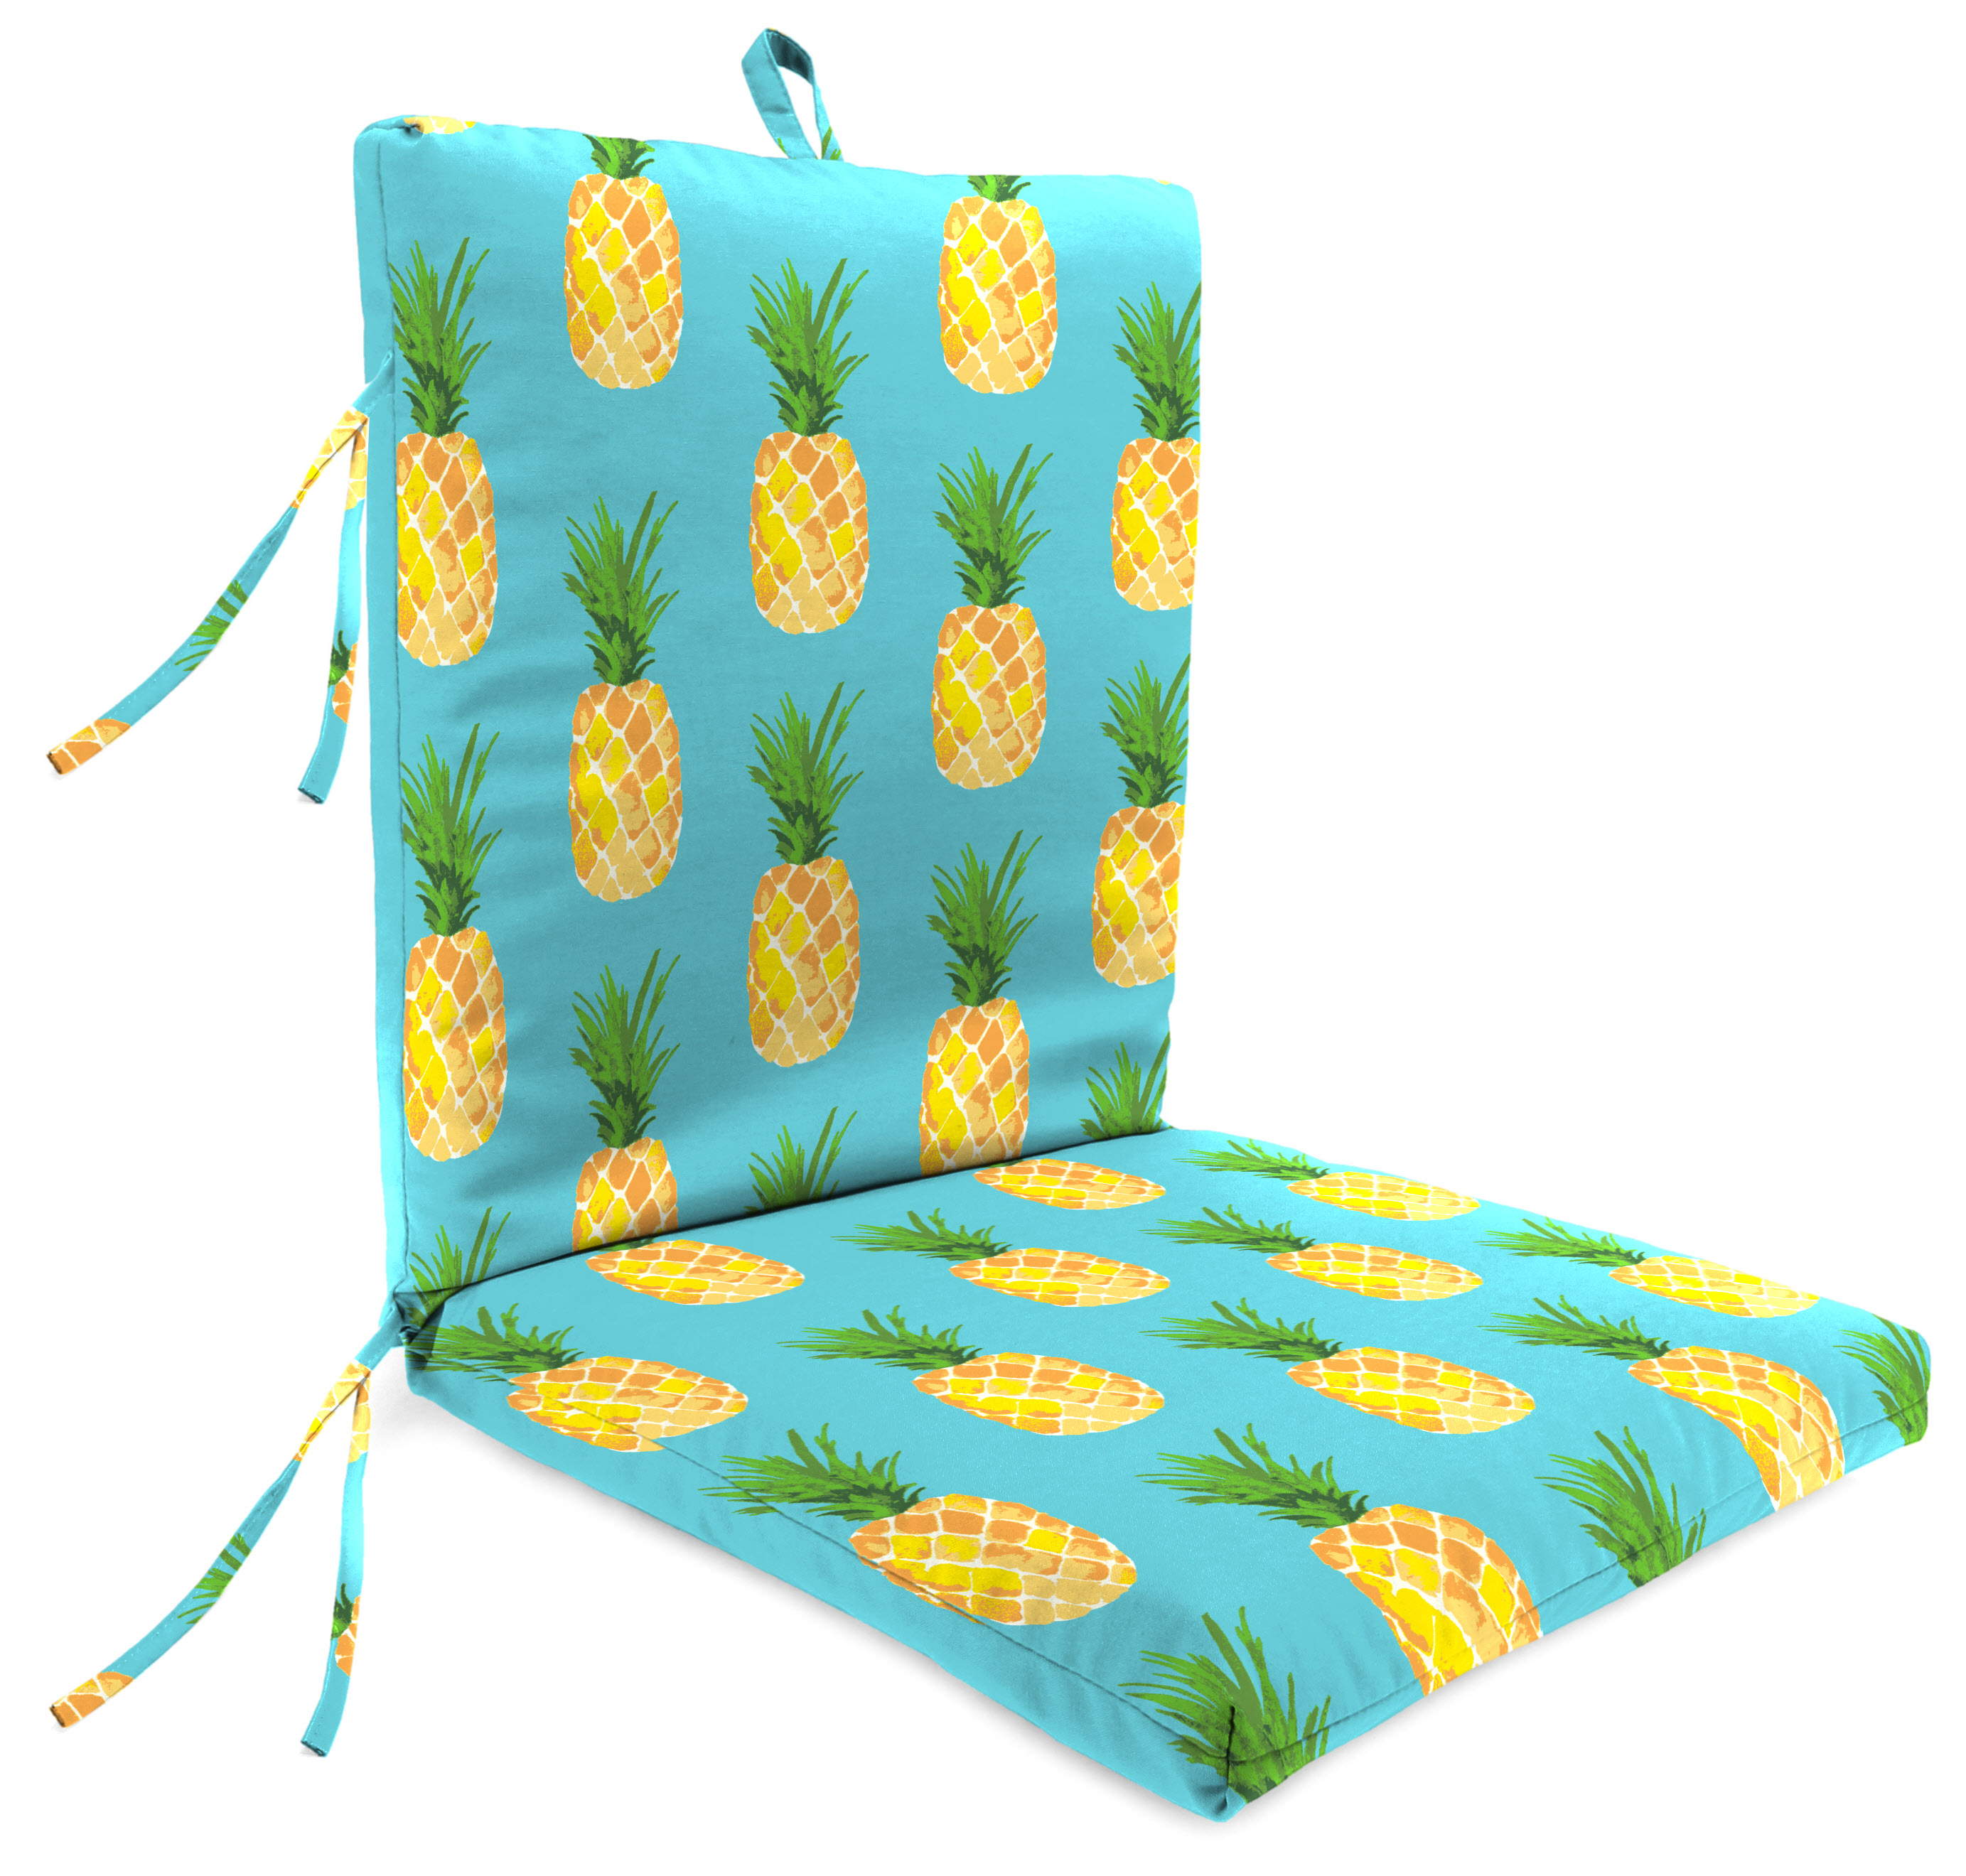 Mainstays Outdoor Patio 1 Piece Chair Cushion Smoothie Aqua